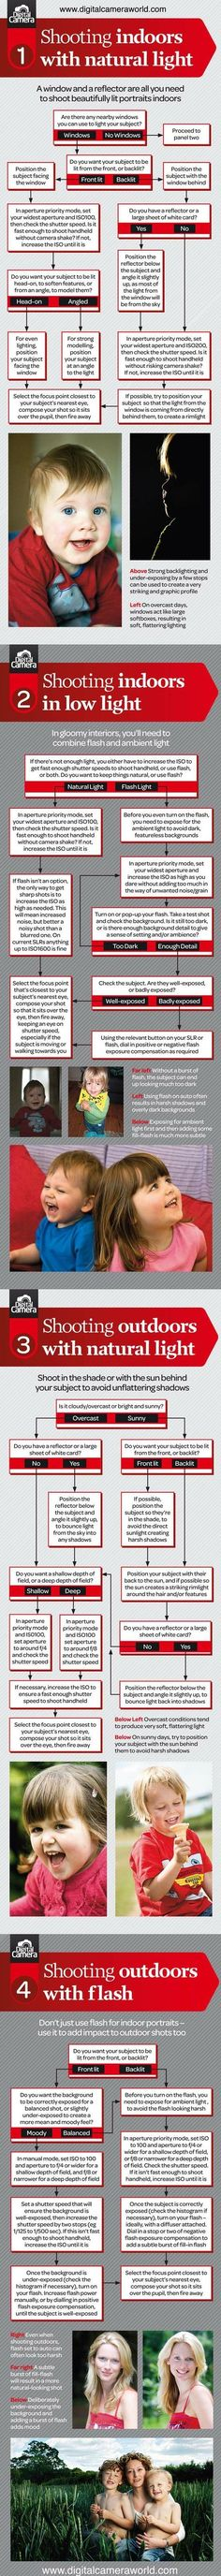 Shooting indoors with natural light (infographic from digital world) #naturephotographytips,